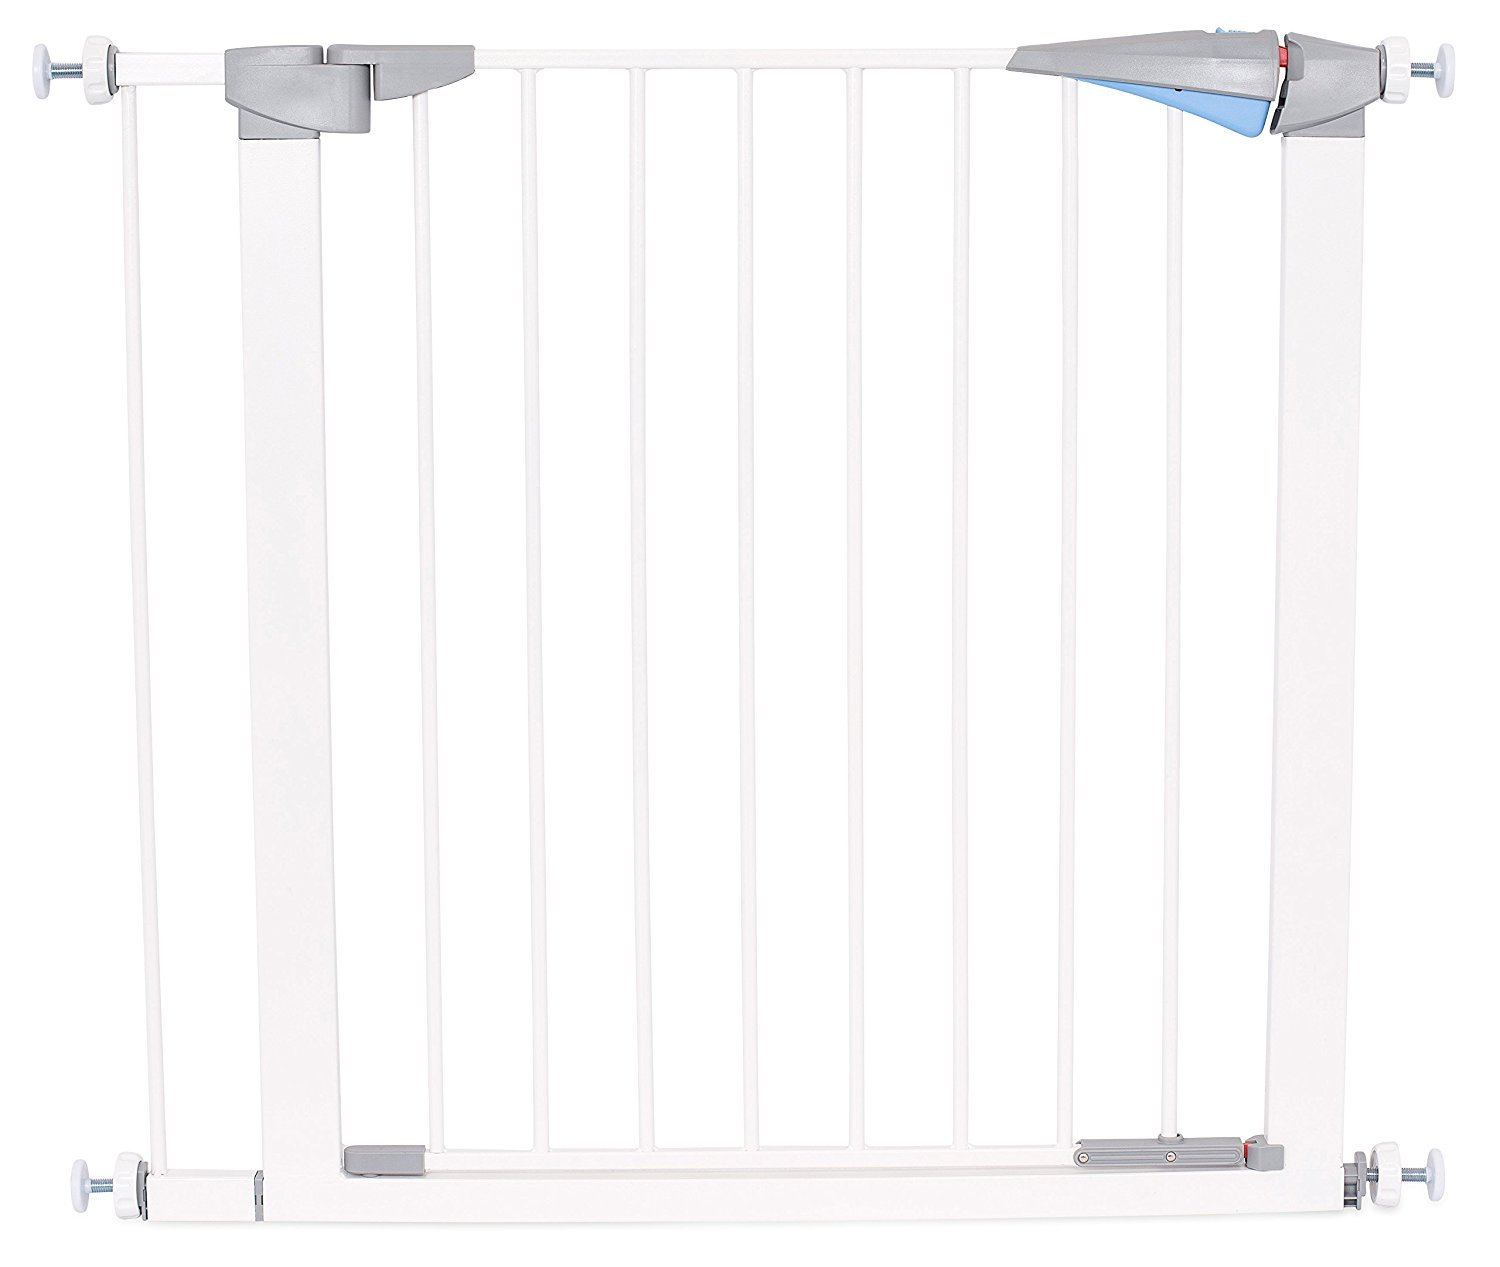 Safety Pet Gate with Door   Fits Spaces 27.5 to 30 Inch   Small   Metal Walk Through Safety Gate   Double Locking Swing Door   White